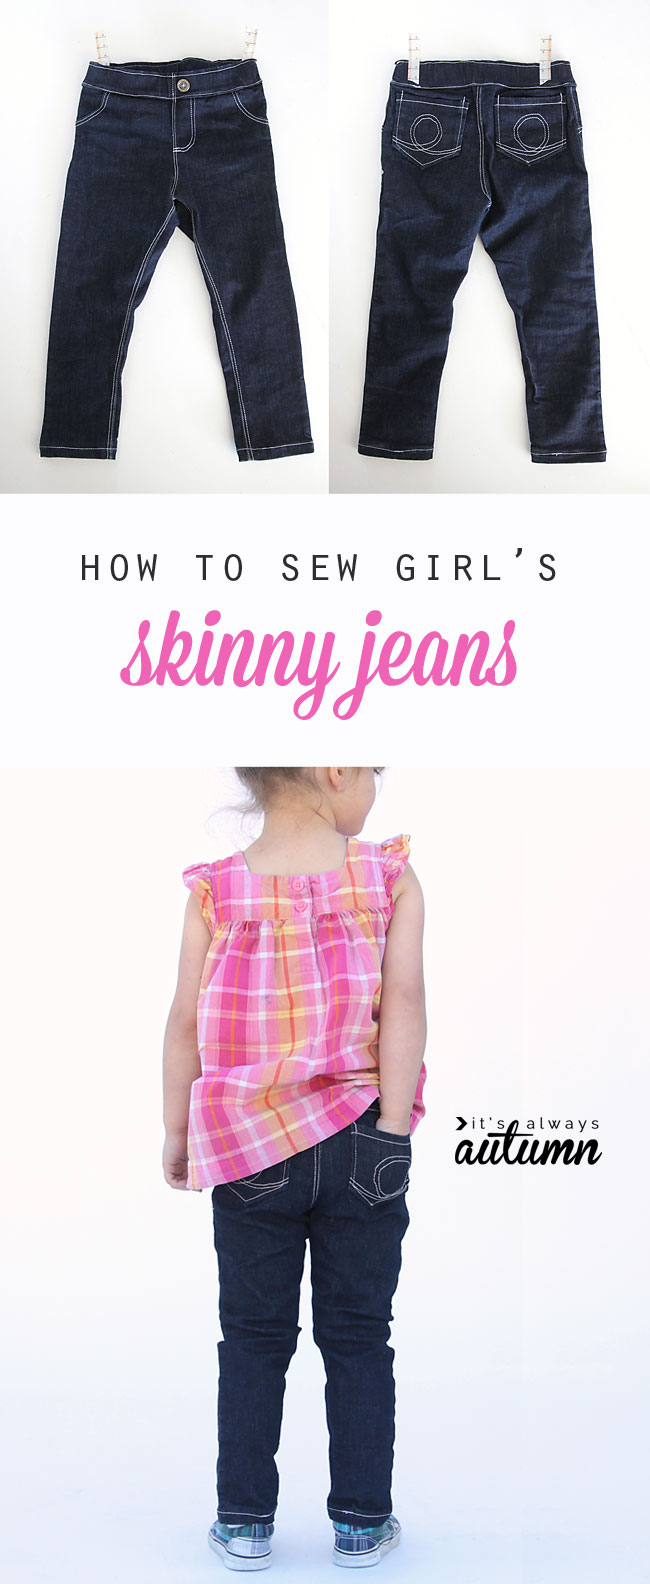 Easy to follow sewing tutorial teaches you how to make skinny jeans for a little girl using any leggings tutorial.